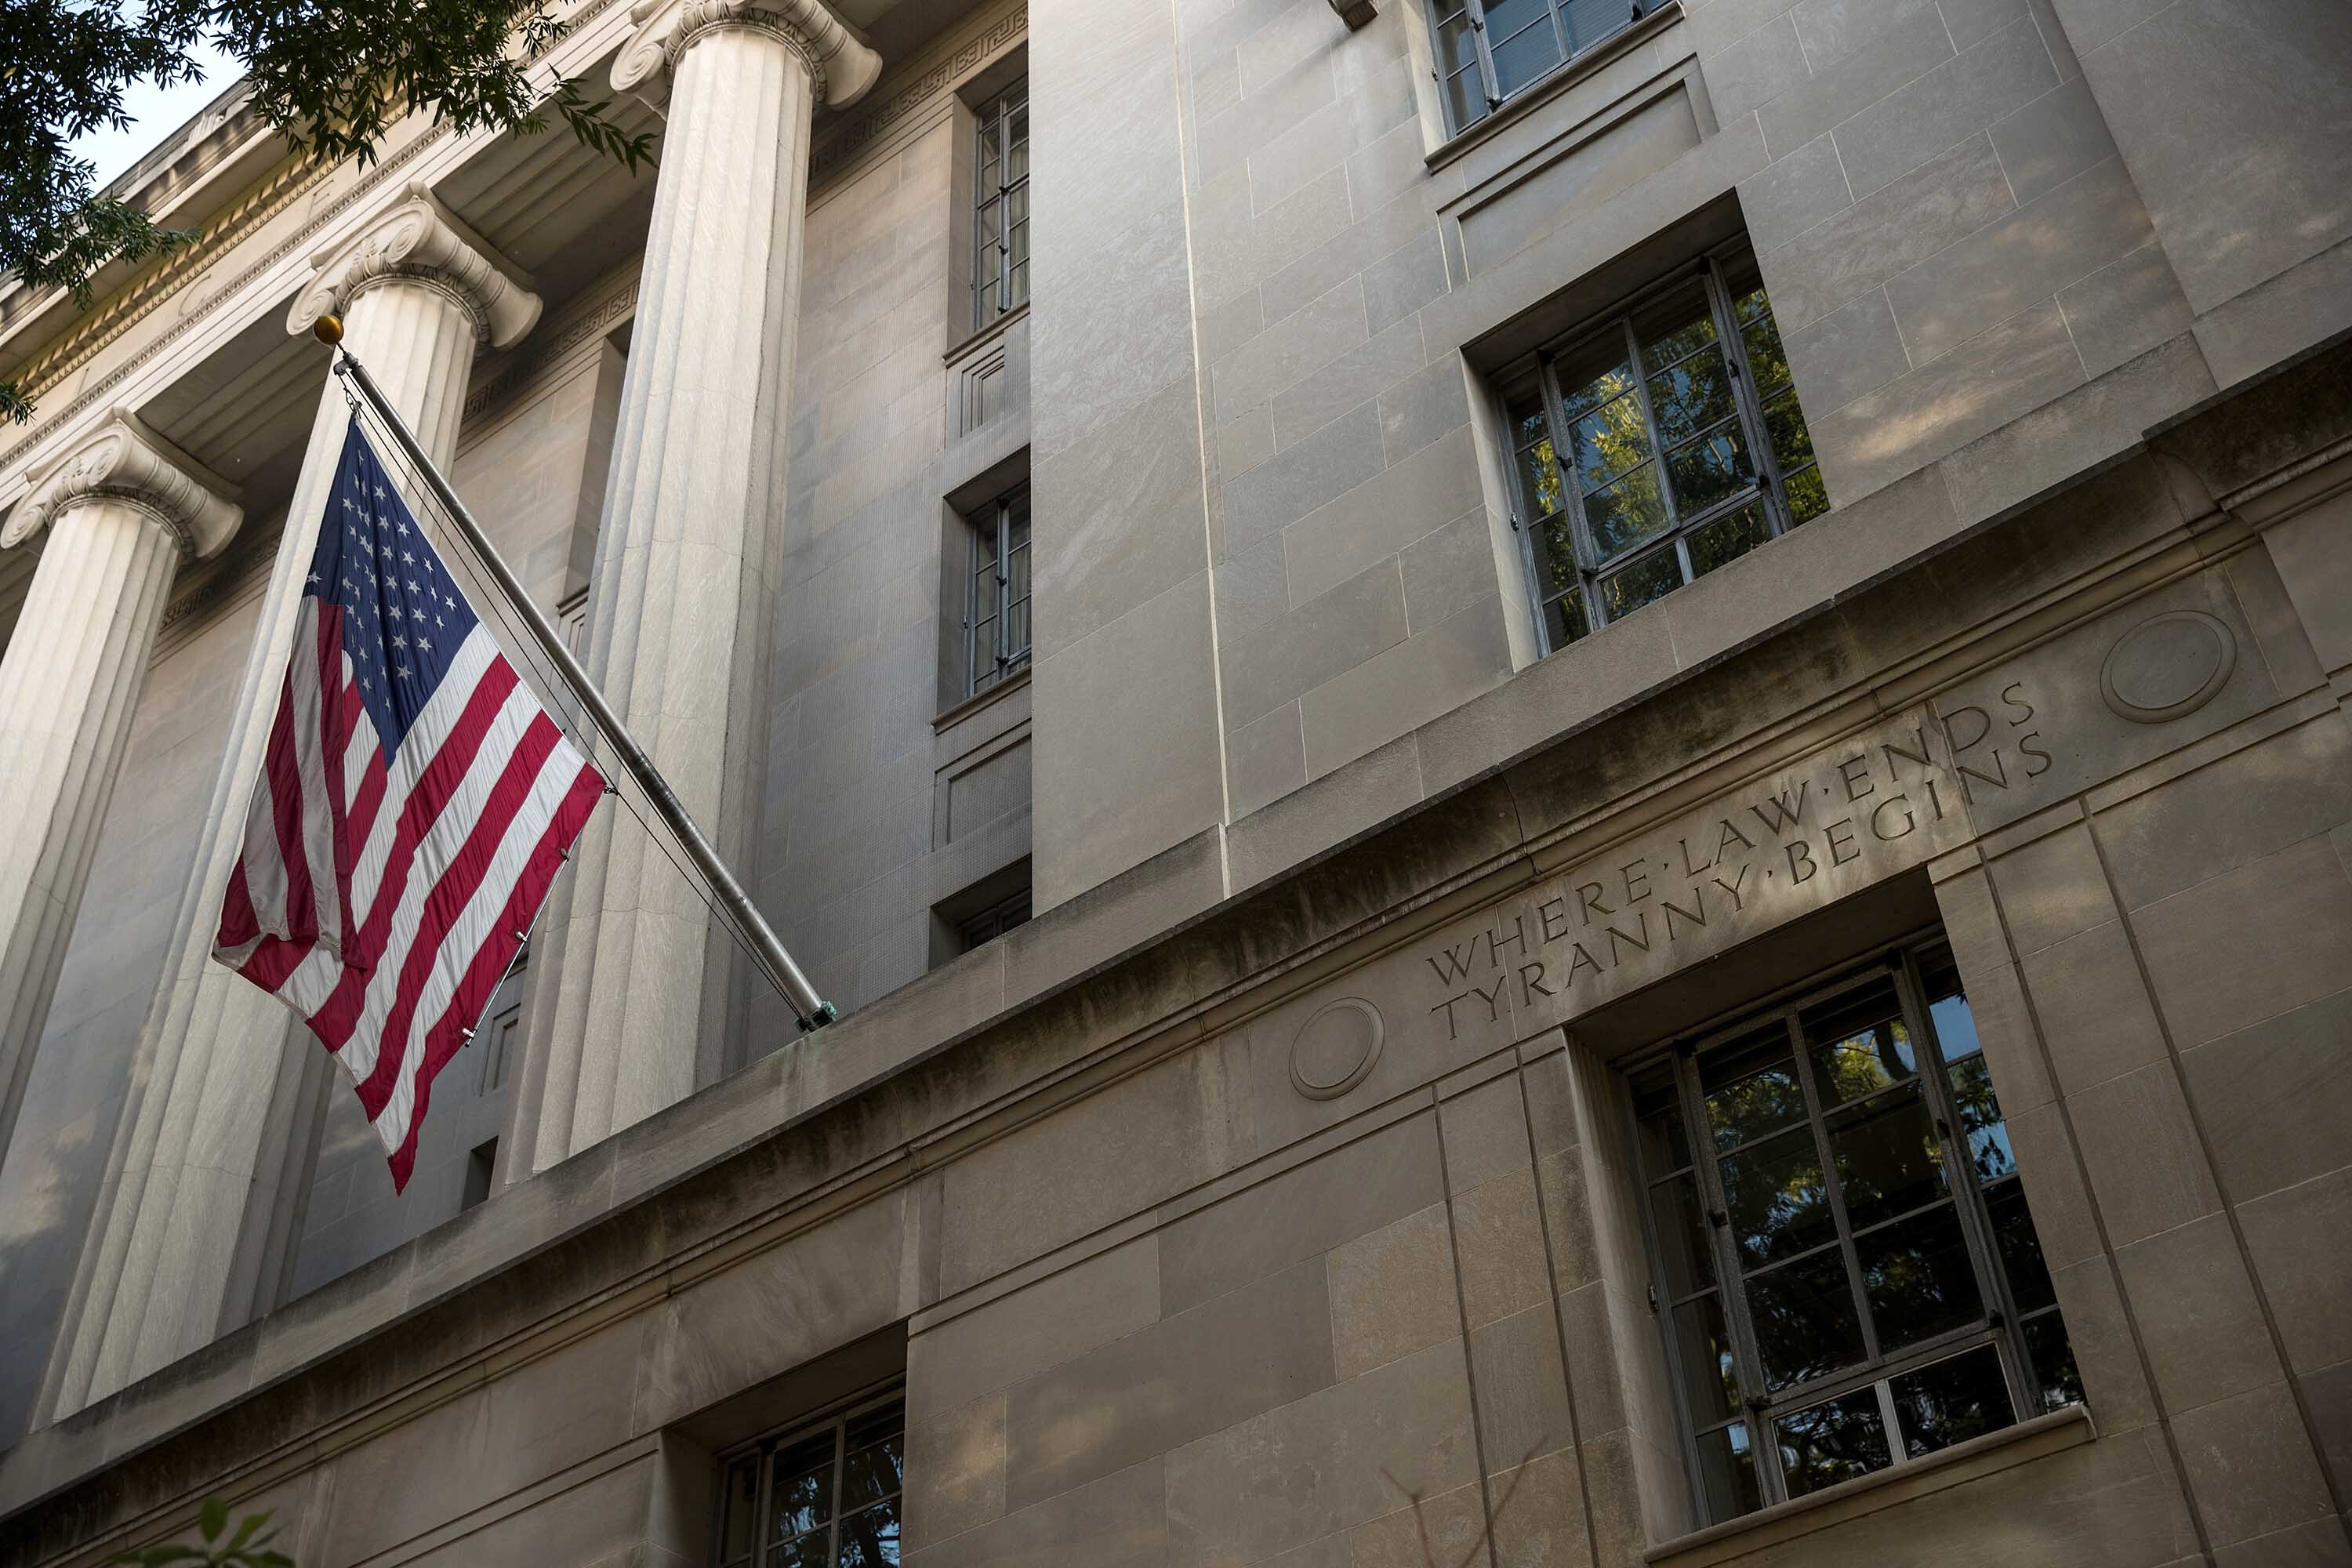 Feds cite sedition in search warrant for lawyer's phone